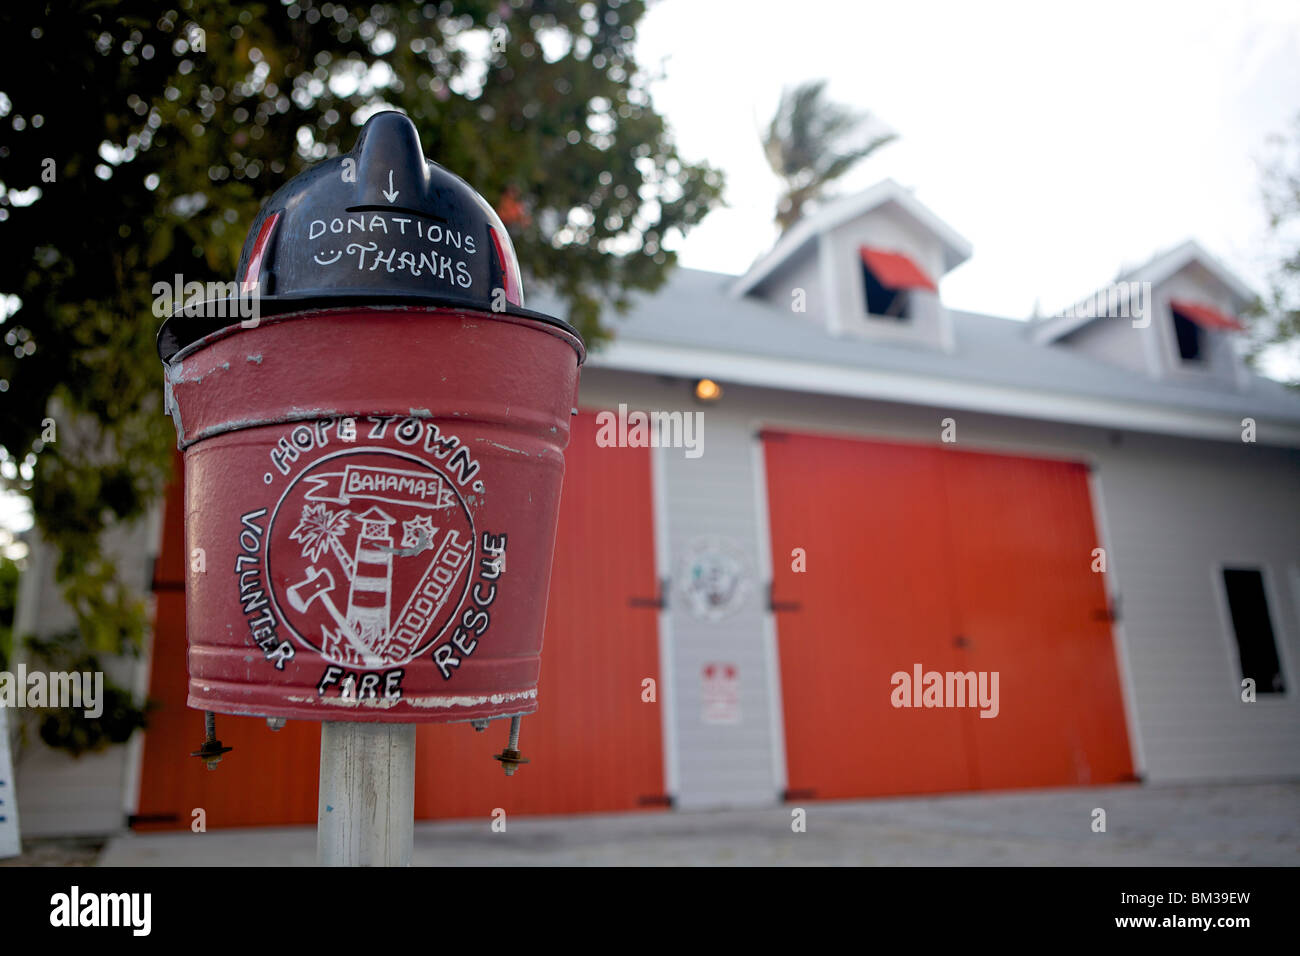 Donation tin for the Hope Town volunteer fire department situated outside the Fire Station in Hope Town in the Bahamas. - Stock Image